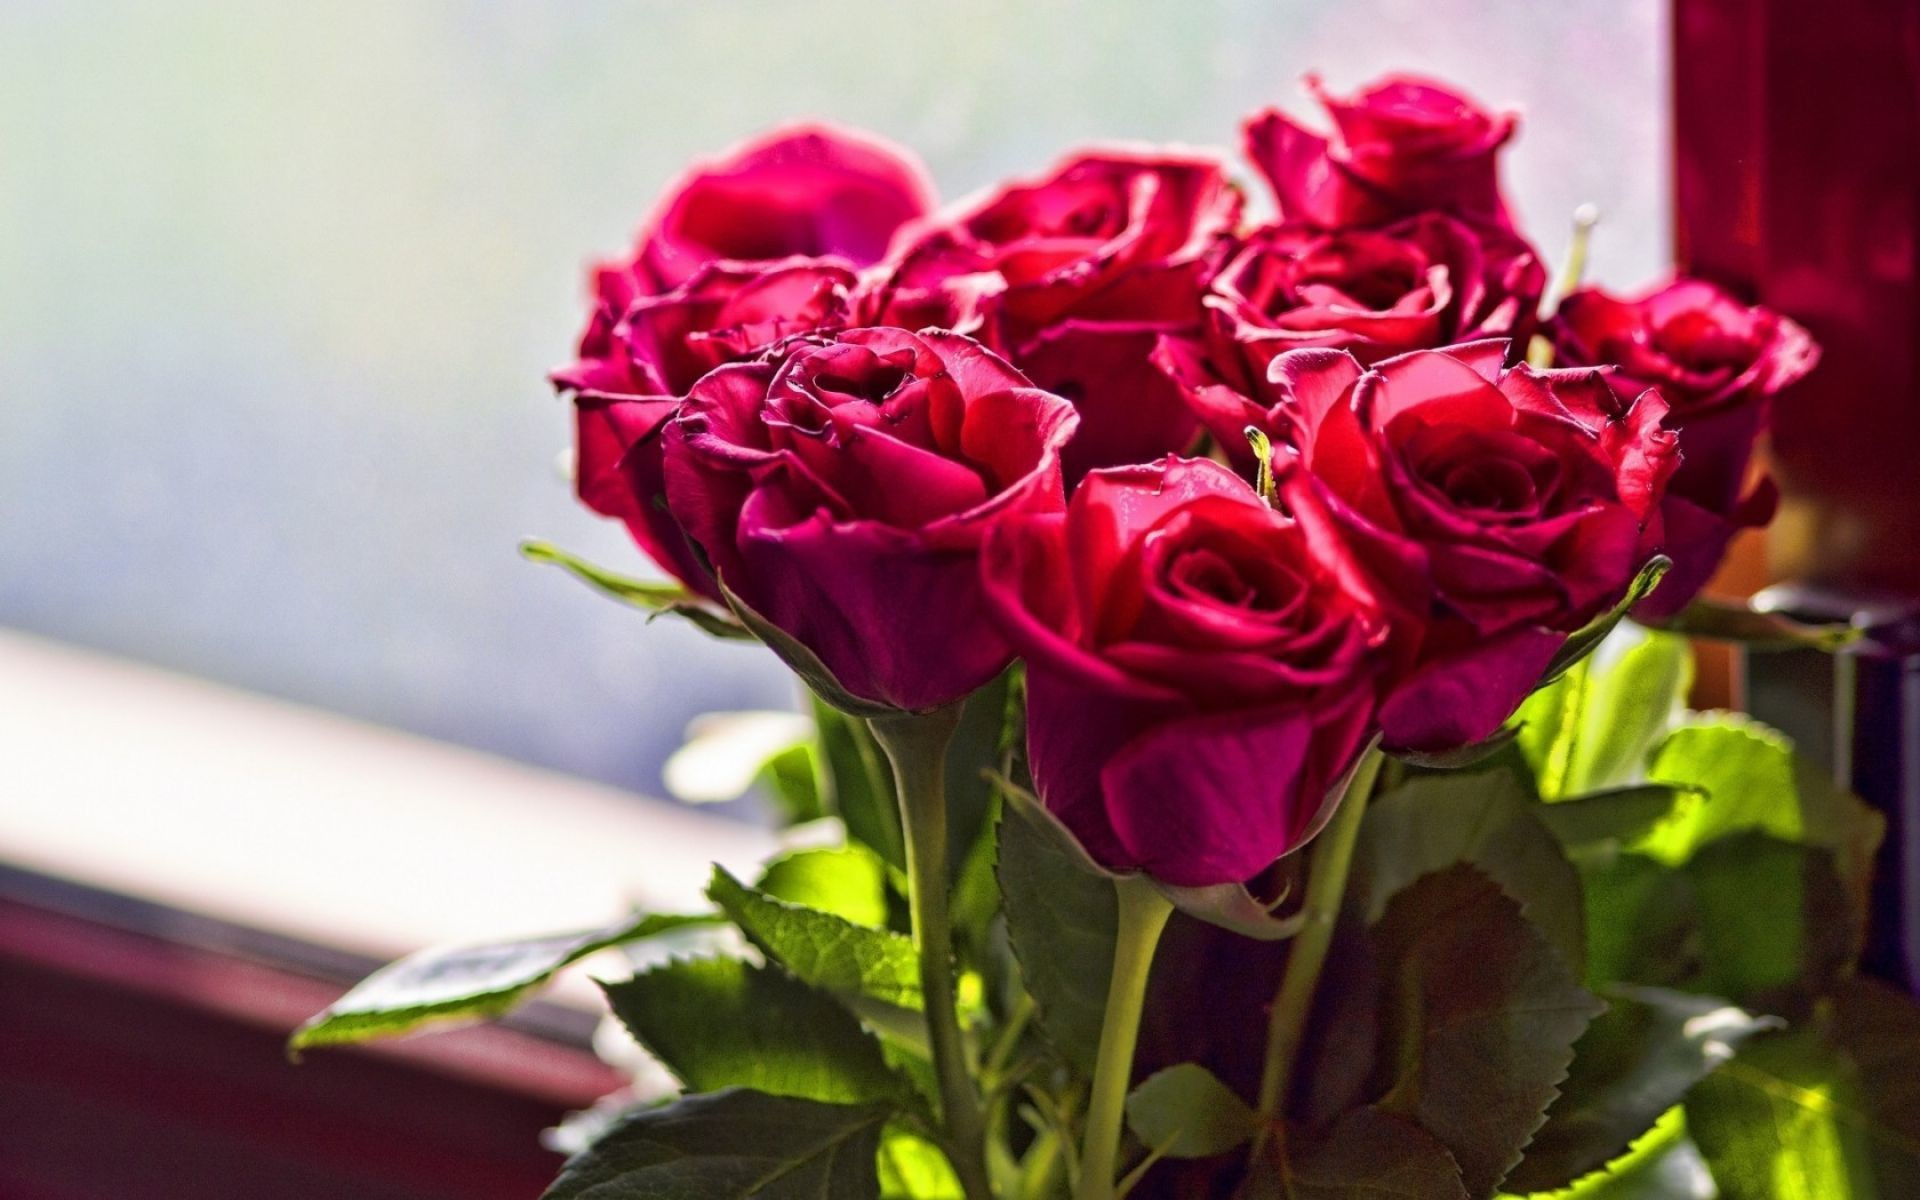 Res: 1920x1200, A Bunch Of Red Roses | HD Flowers Wallpaper Free Download ...